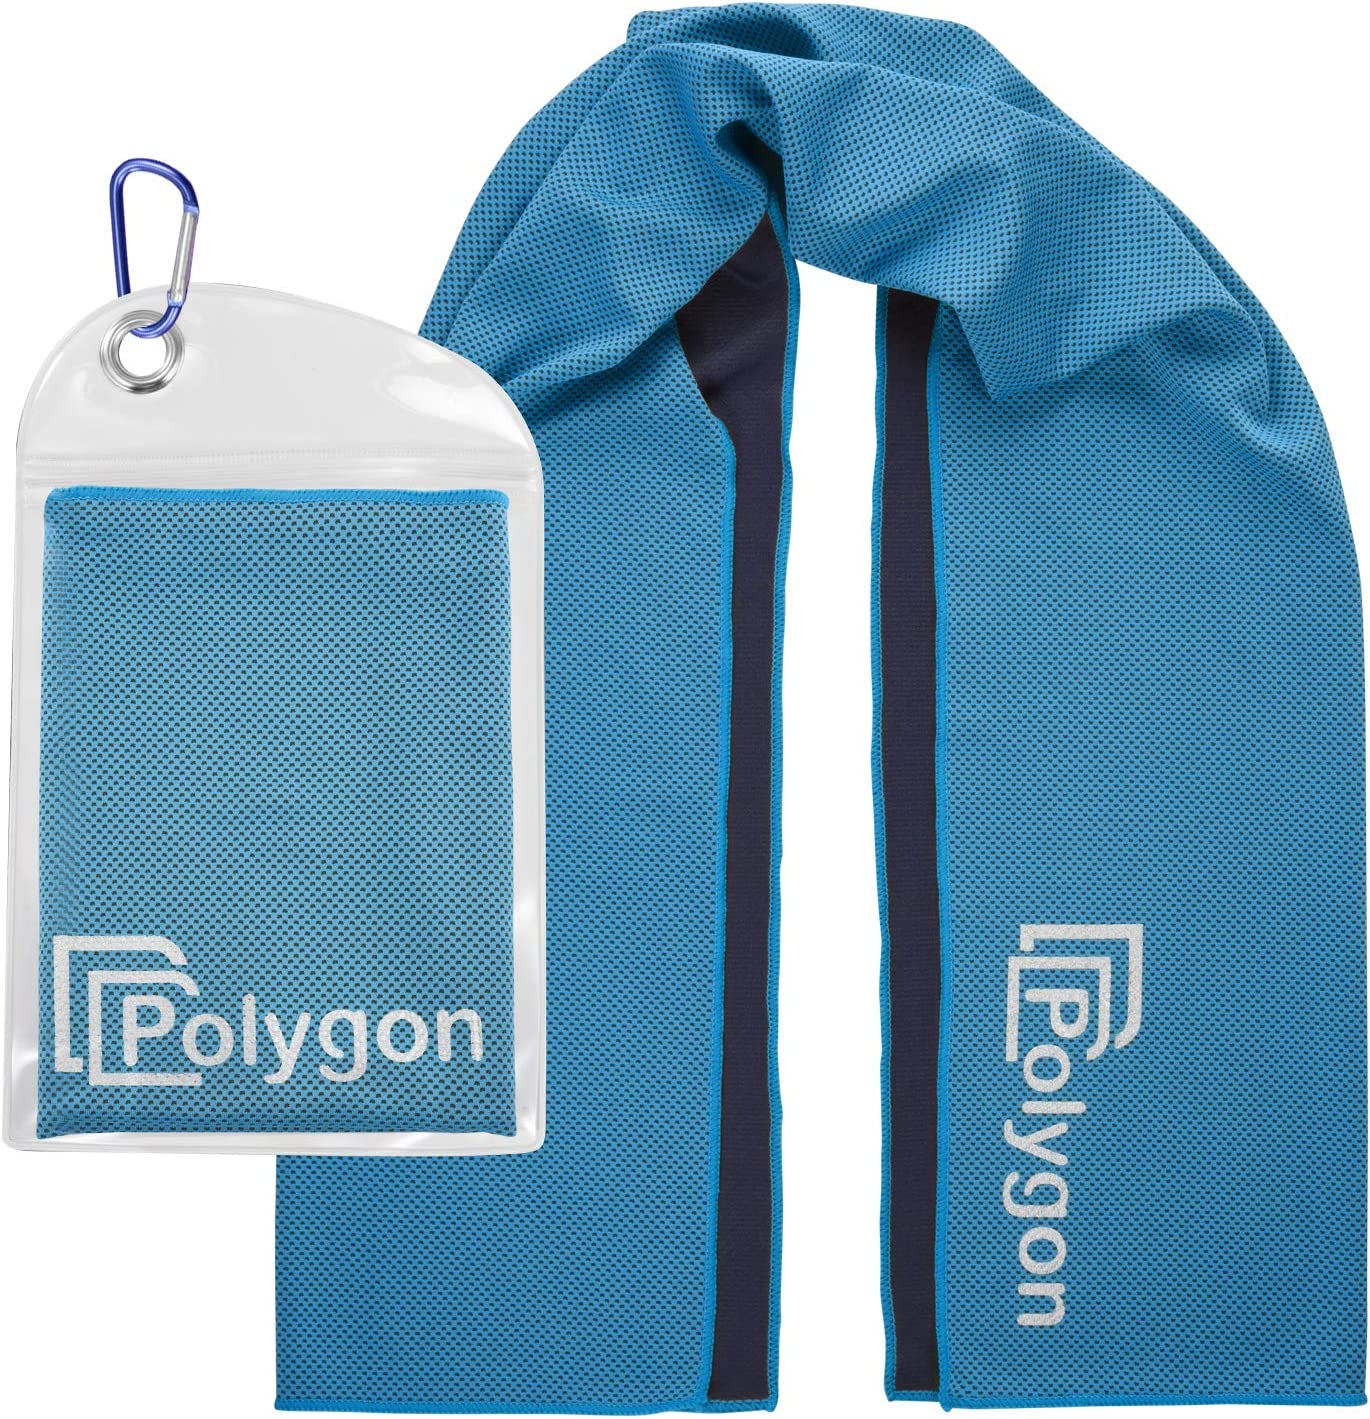 """Polygon Cooling Towel, Microfiber Ice Sports Towel, Instant Chilling Neck Wrap for Sports, Workout, Running, Hiking, Fitness, Gym, Yoga, Pilates, Travel, Camping, 40"""" x 12"""""""